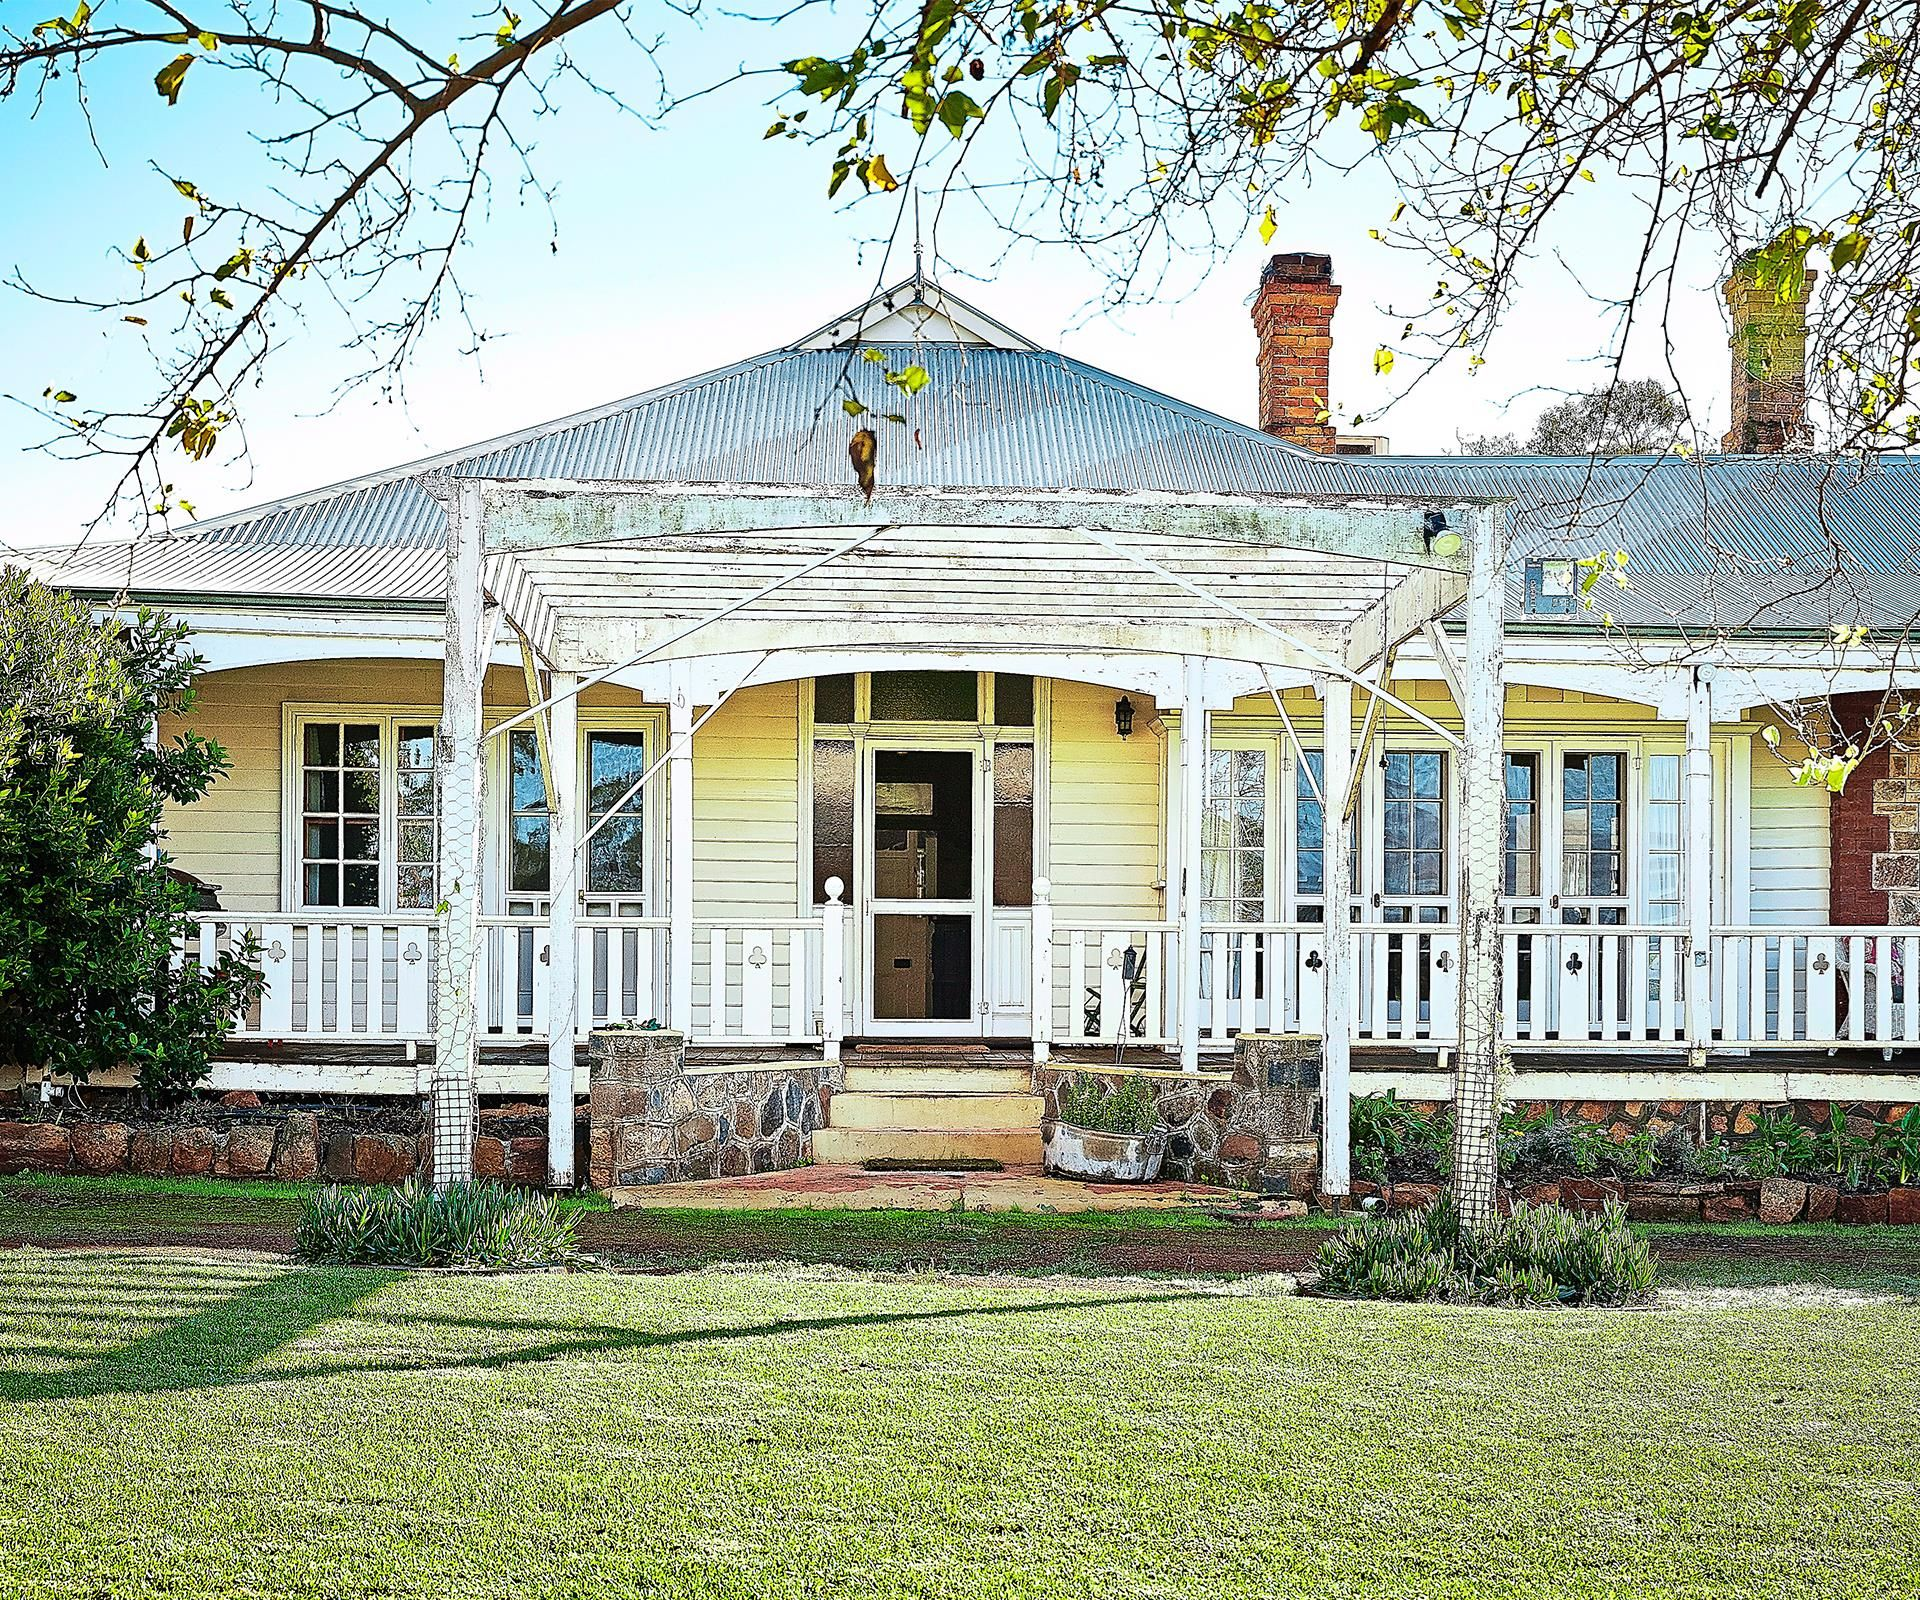 Pergola Designs Costs: Tips For Buying A House To Renovate